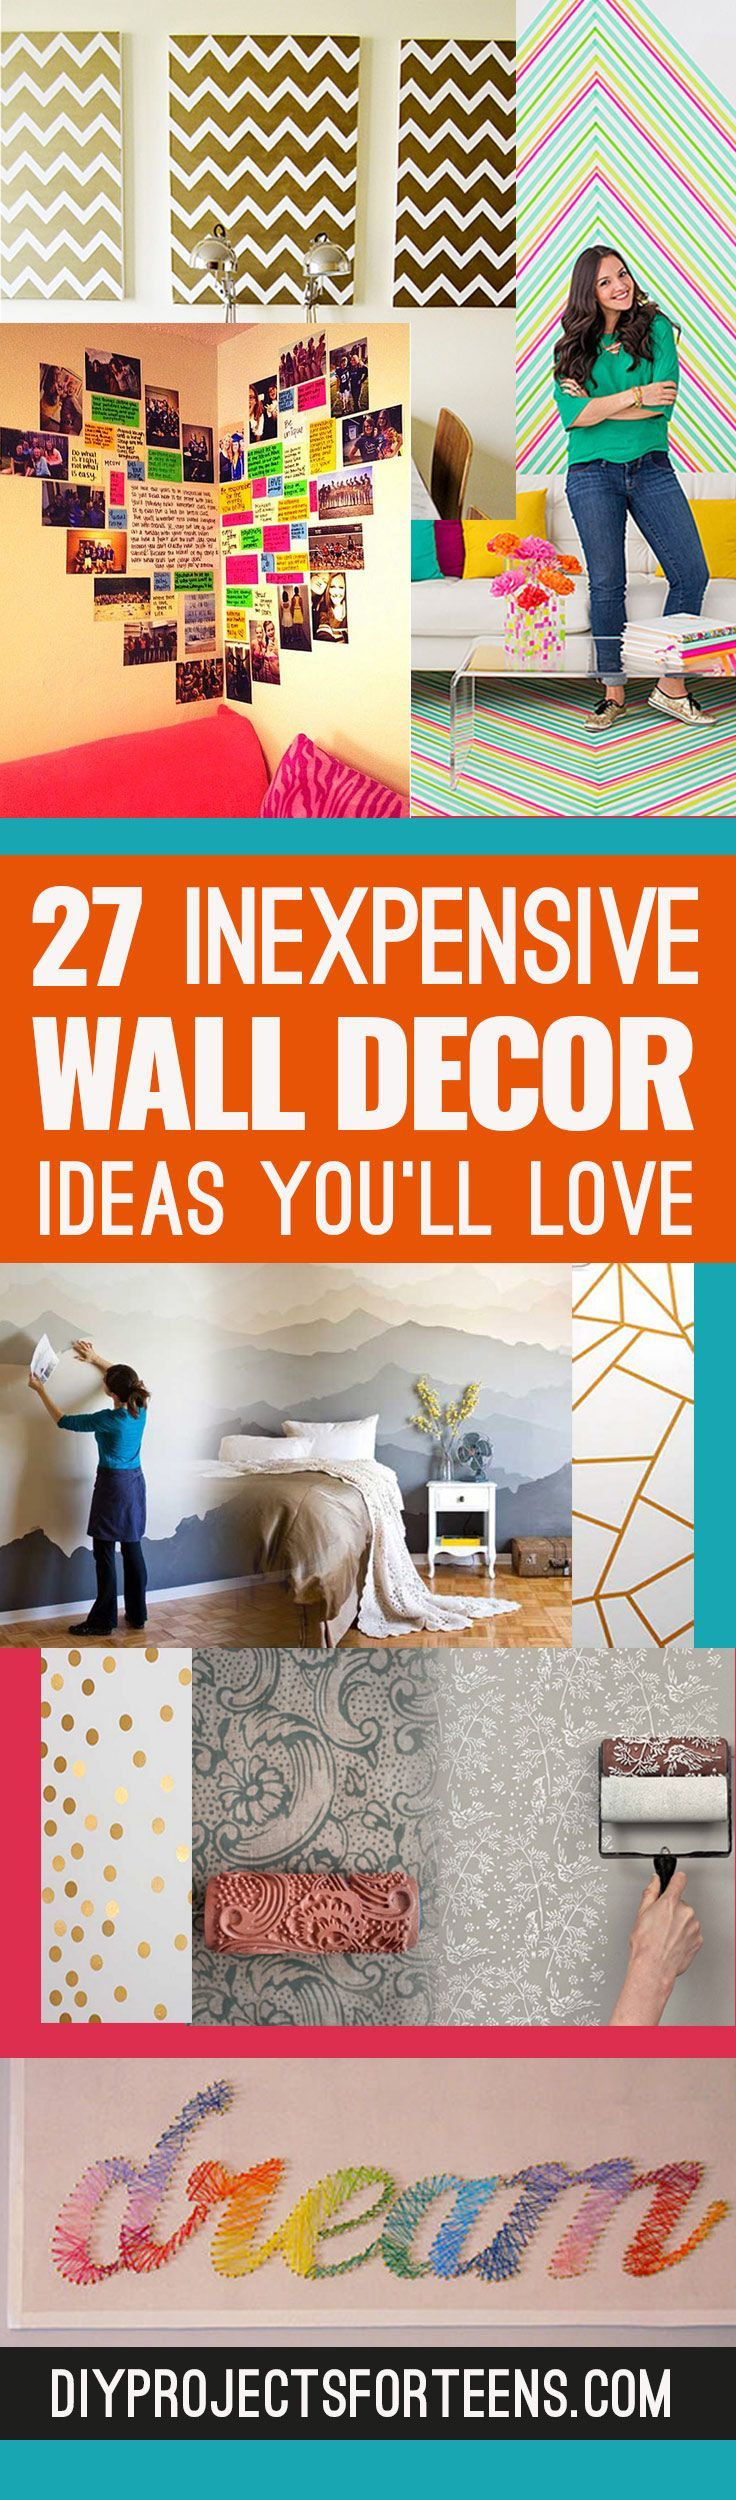 25 Best Ideas About Homemade Room Decorations On Pinterest Cute Diy Projects Teen Room